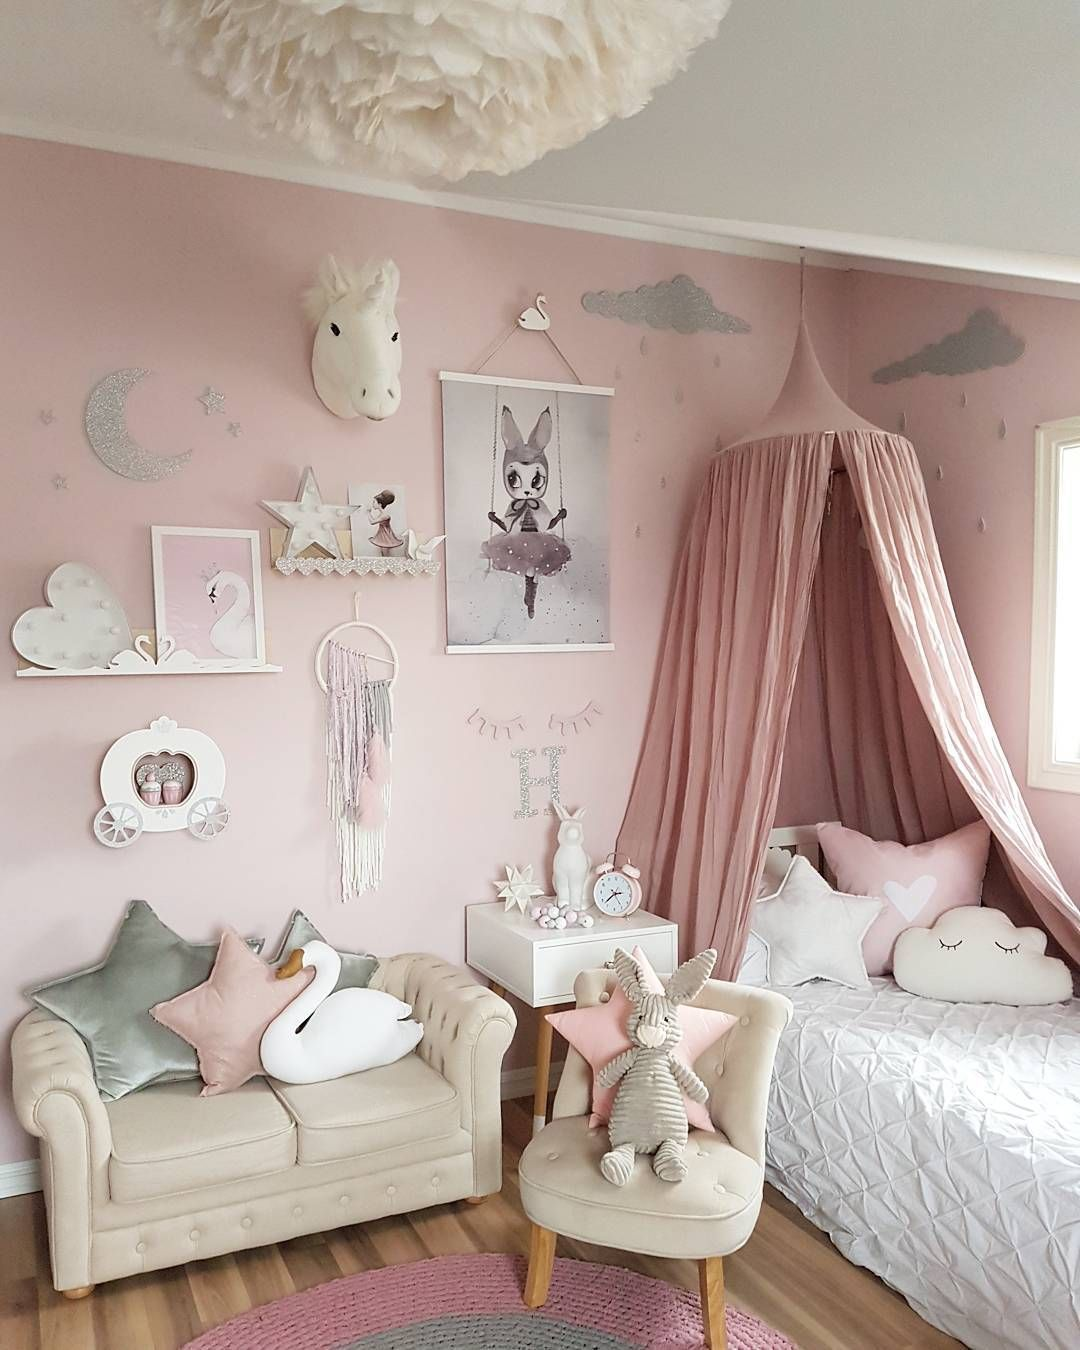 Free 16 Girls Bedroom Paint Ideas 11 Year Old Girl Bedroom Ideas Girlsbedroomfurniture Do You Think In 2021 Girls Room Paint Girl Bedroom Decor Girls Bedroom Paint